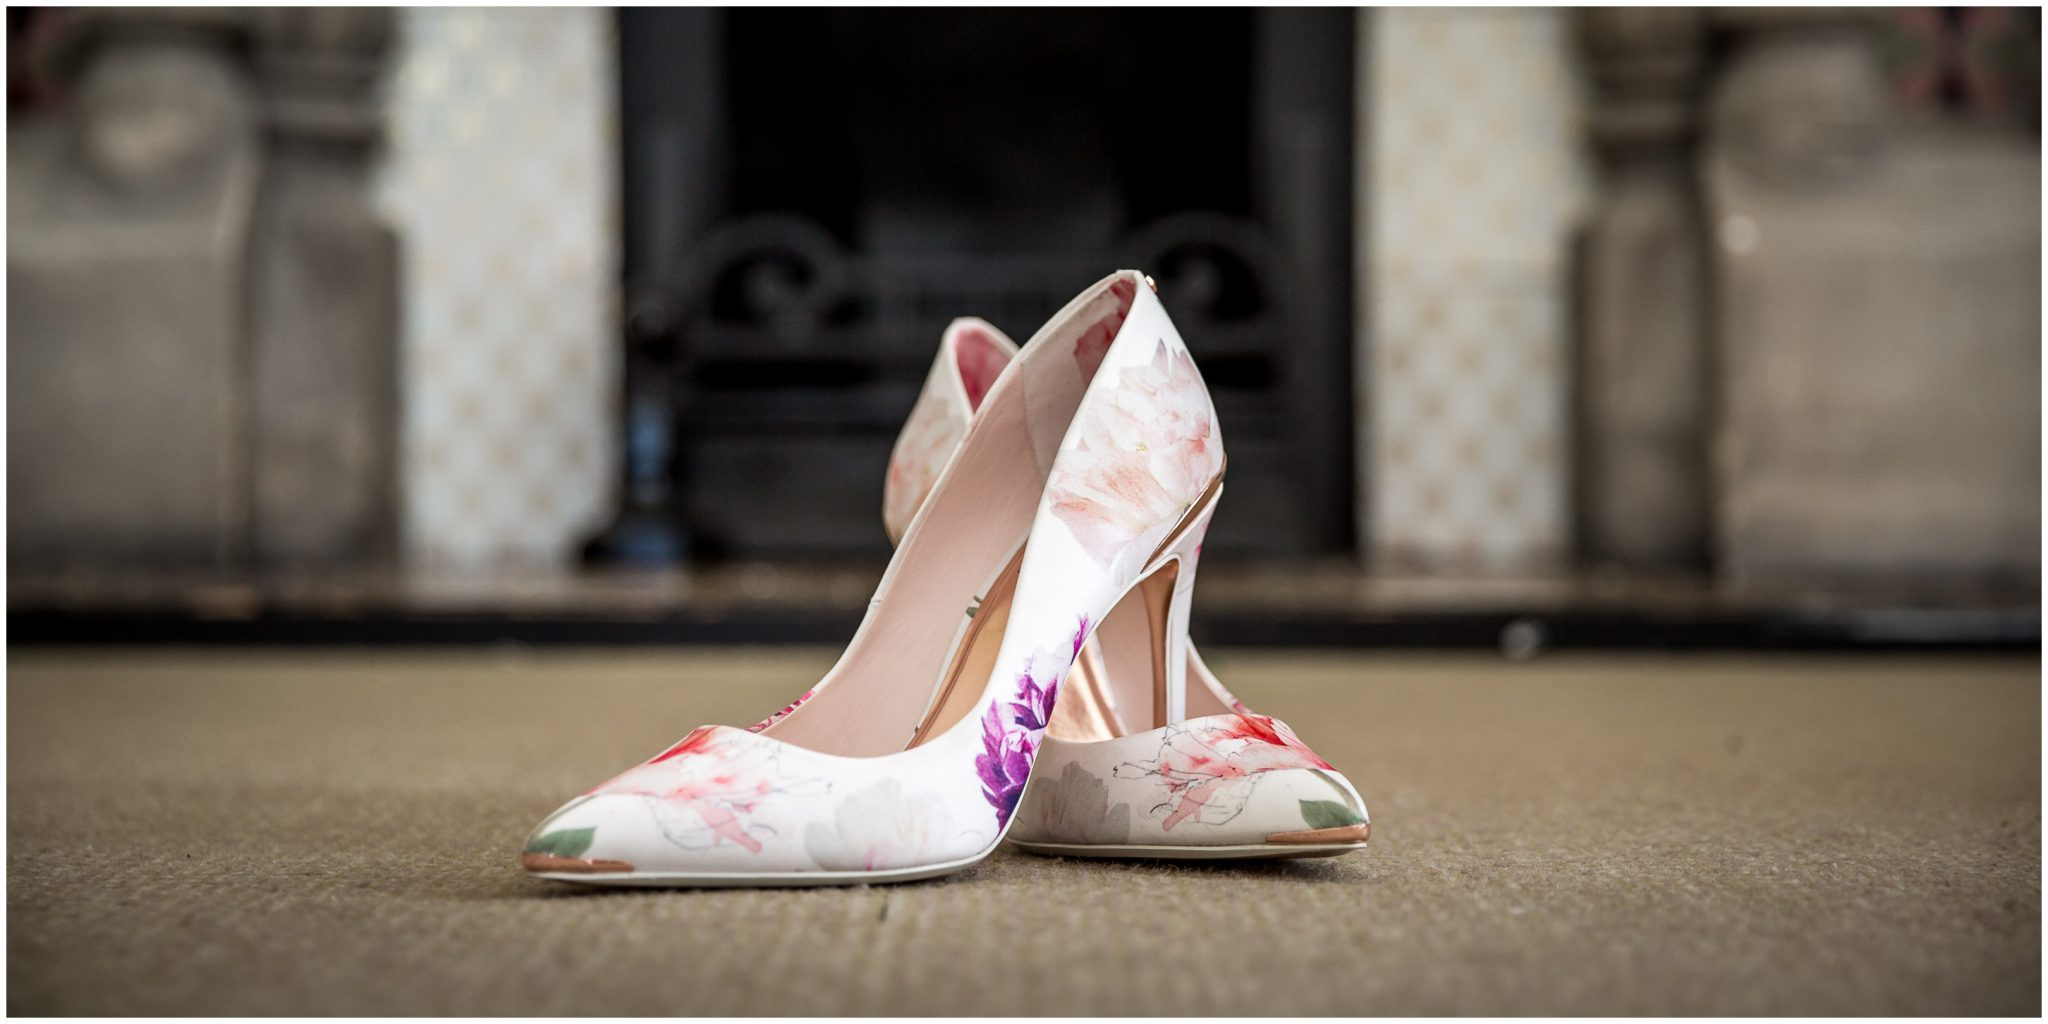 Colourful, floral patterned wedding shoes